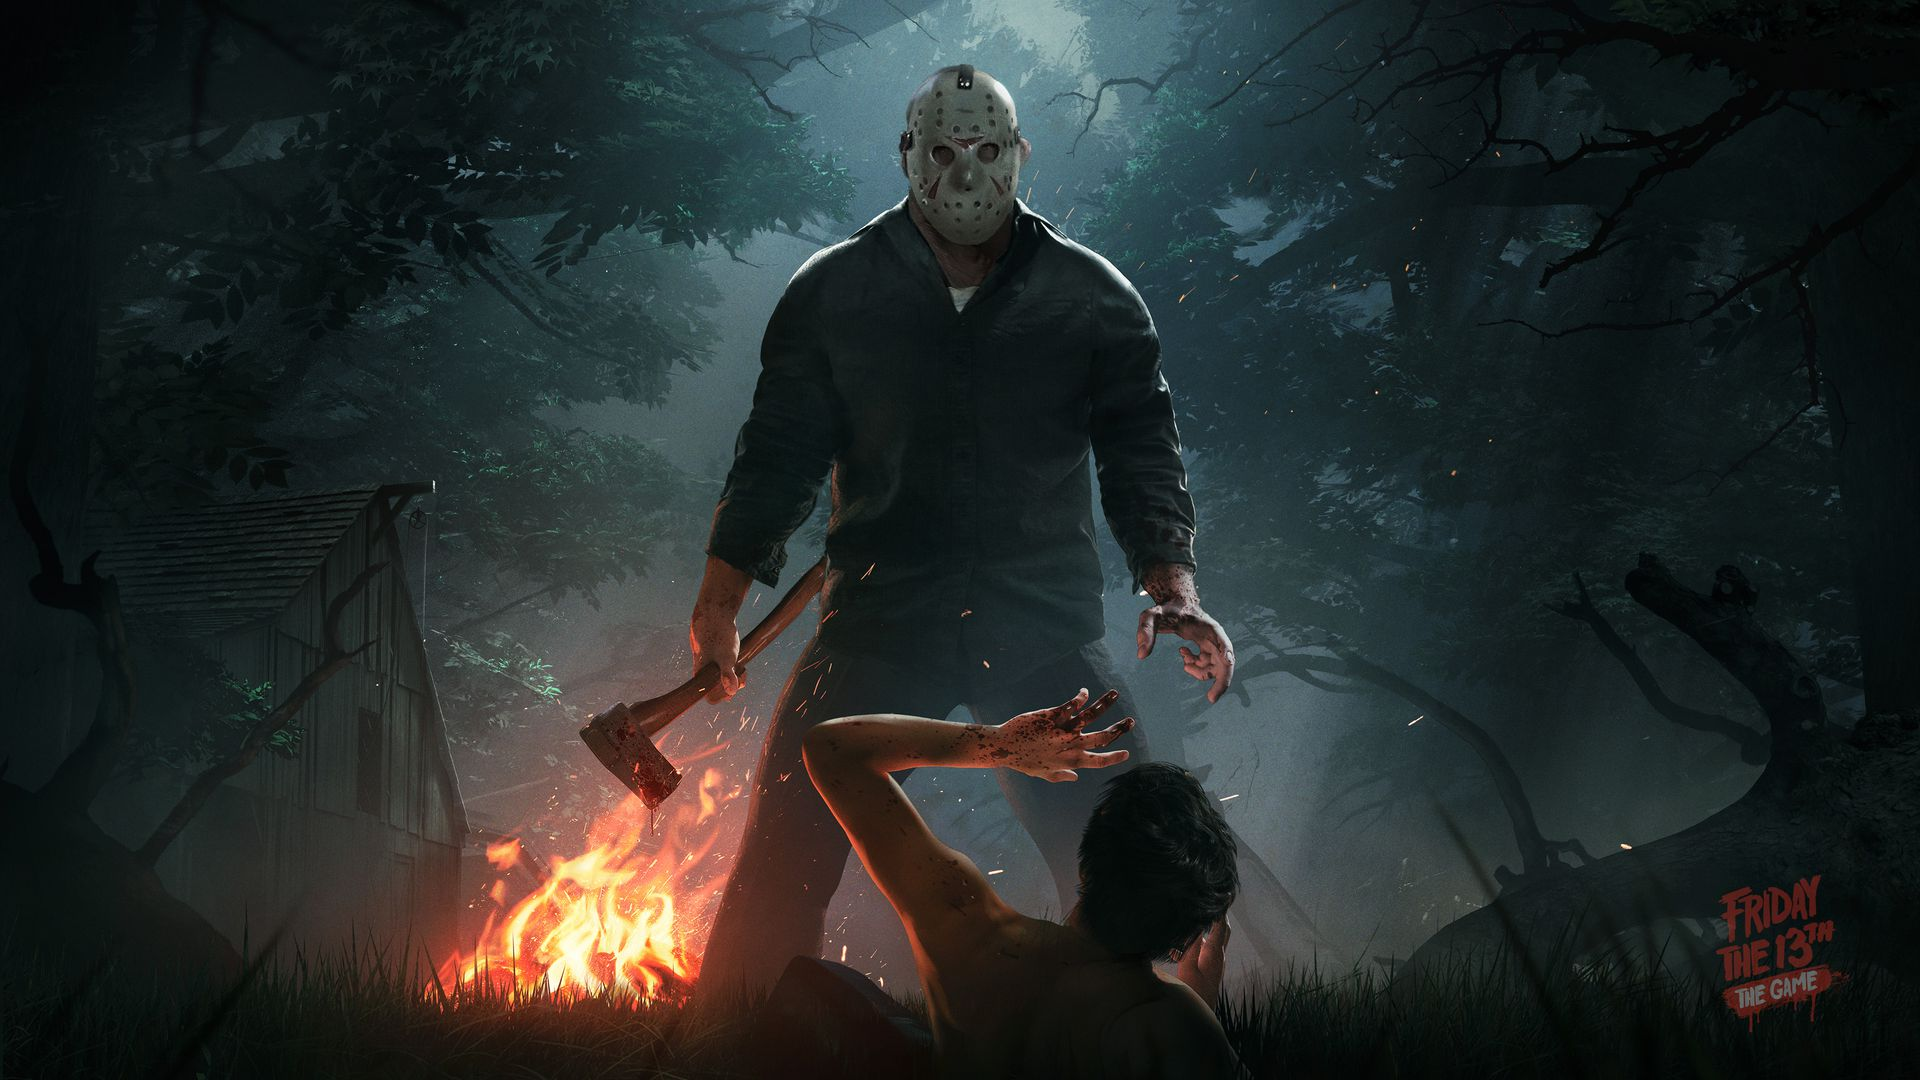 Friday the 13th is back | Polygon